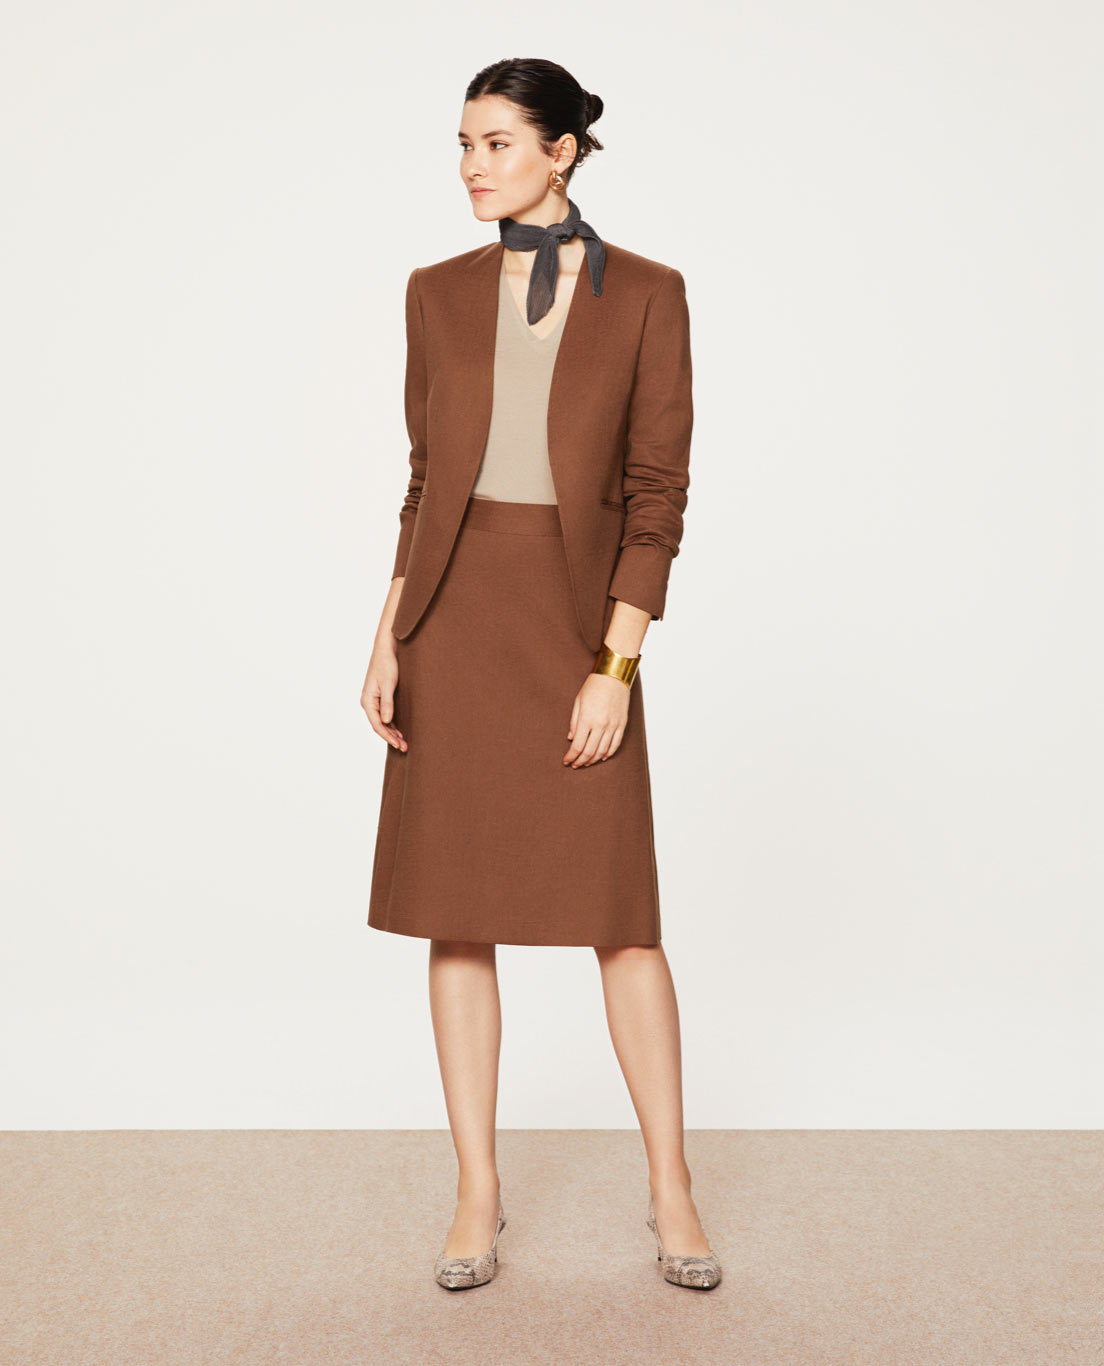 COMFORT NO COLLAR JACKET・ALINE SKIRT: 5457 / STRETCH / LINEN / VISCOSE / BROWN